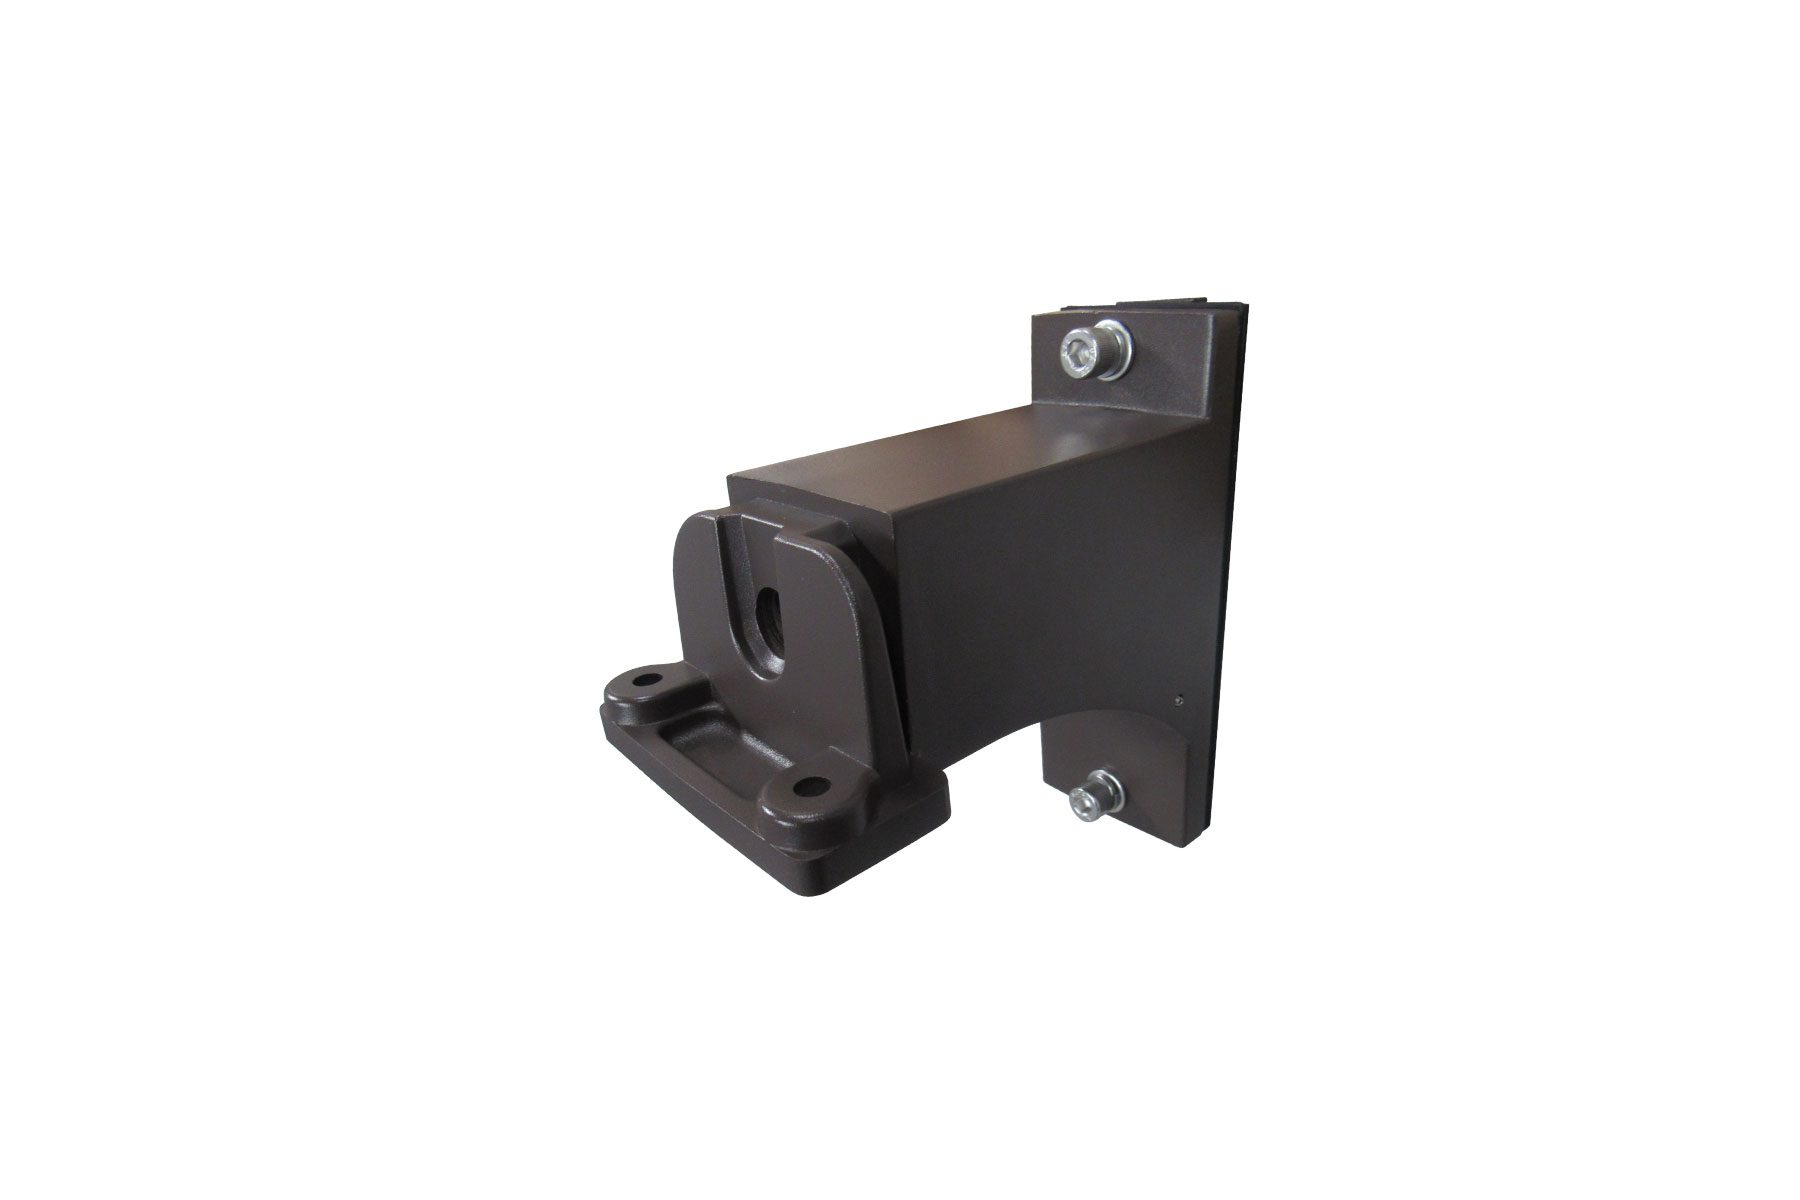 Square and Round pole mount for FLH43 LED Flood Light